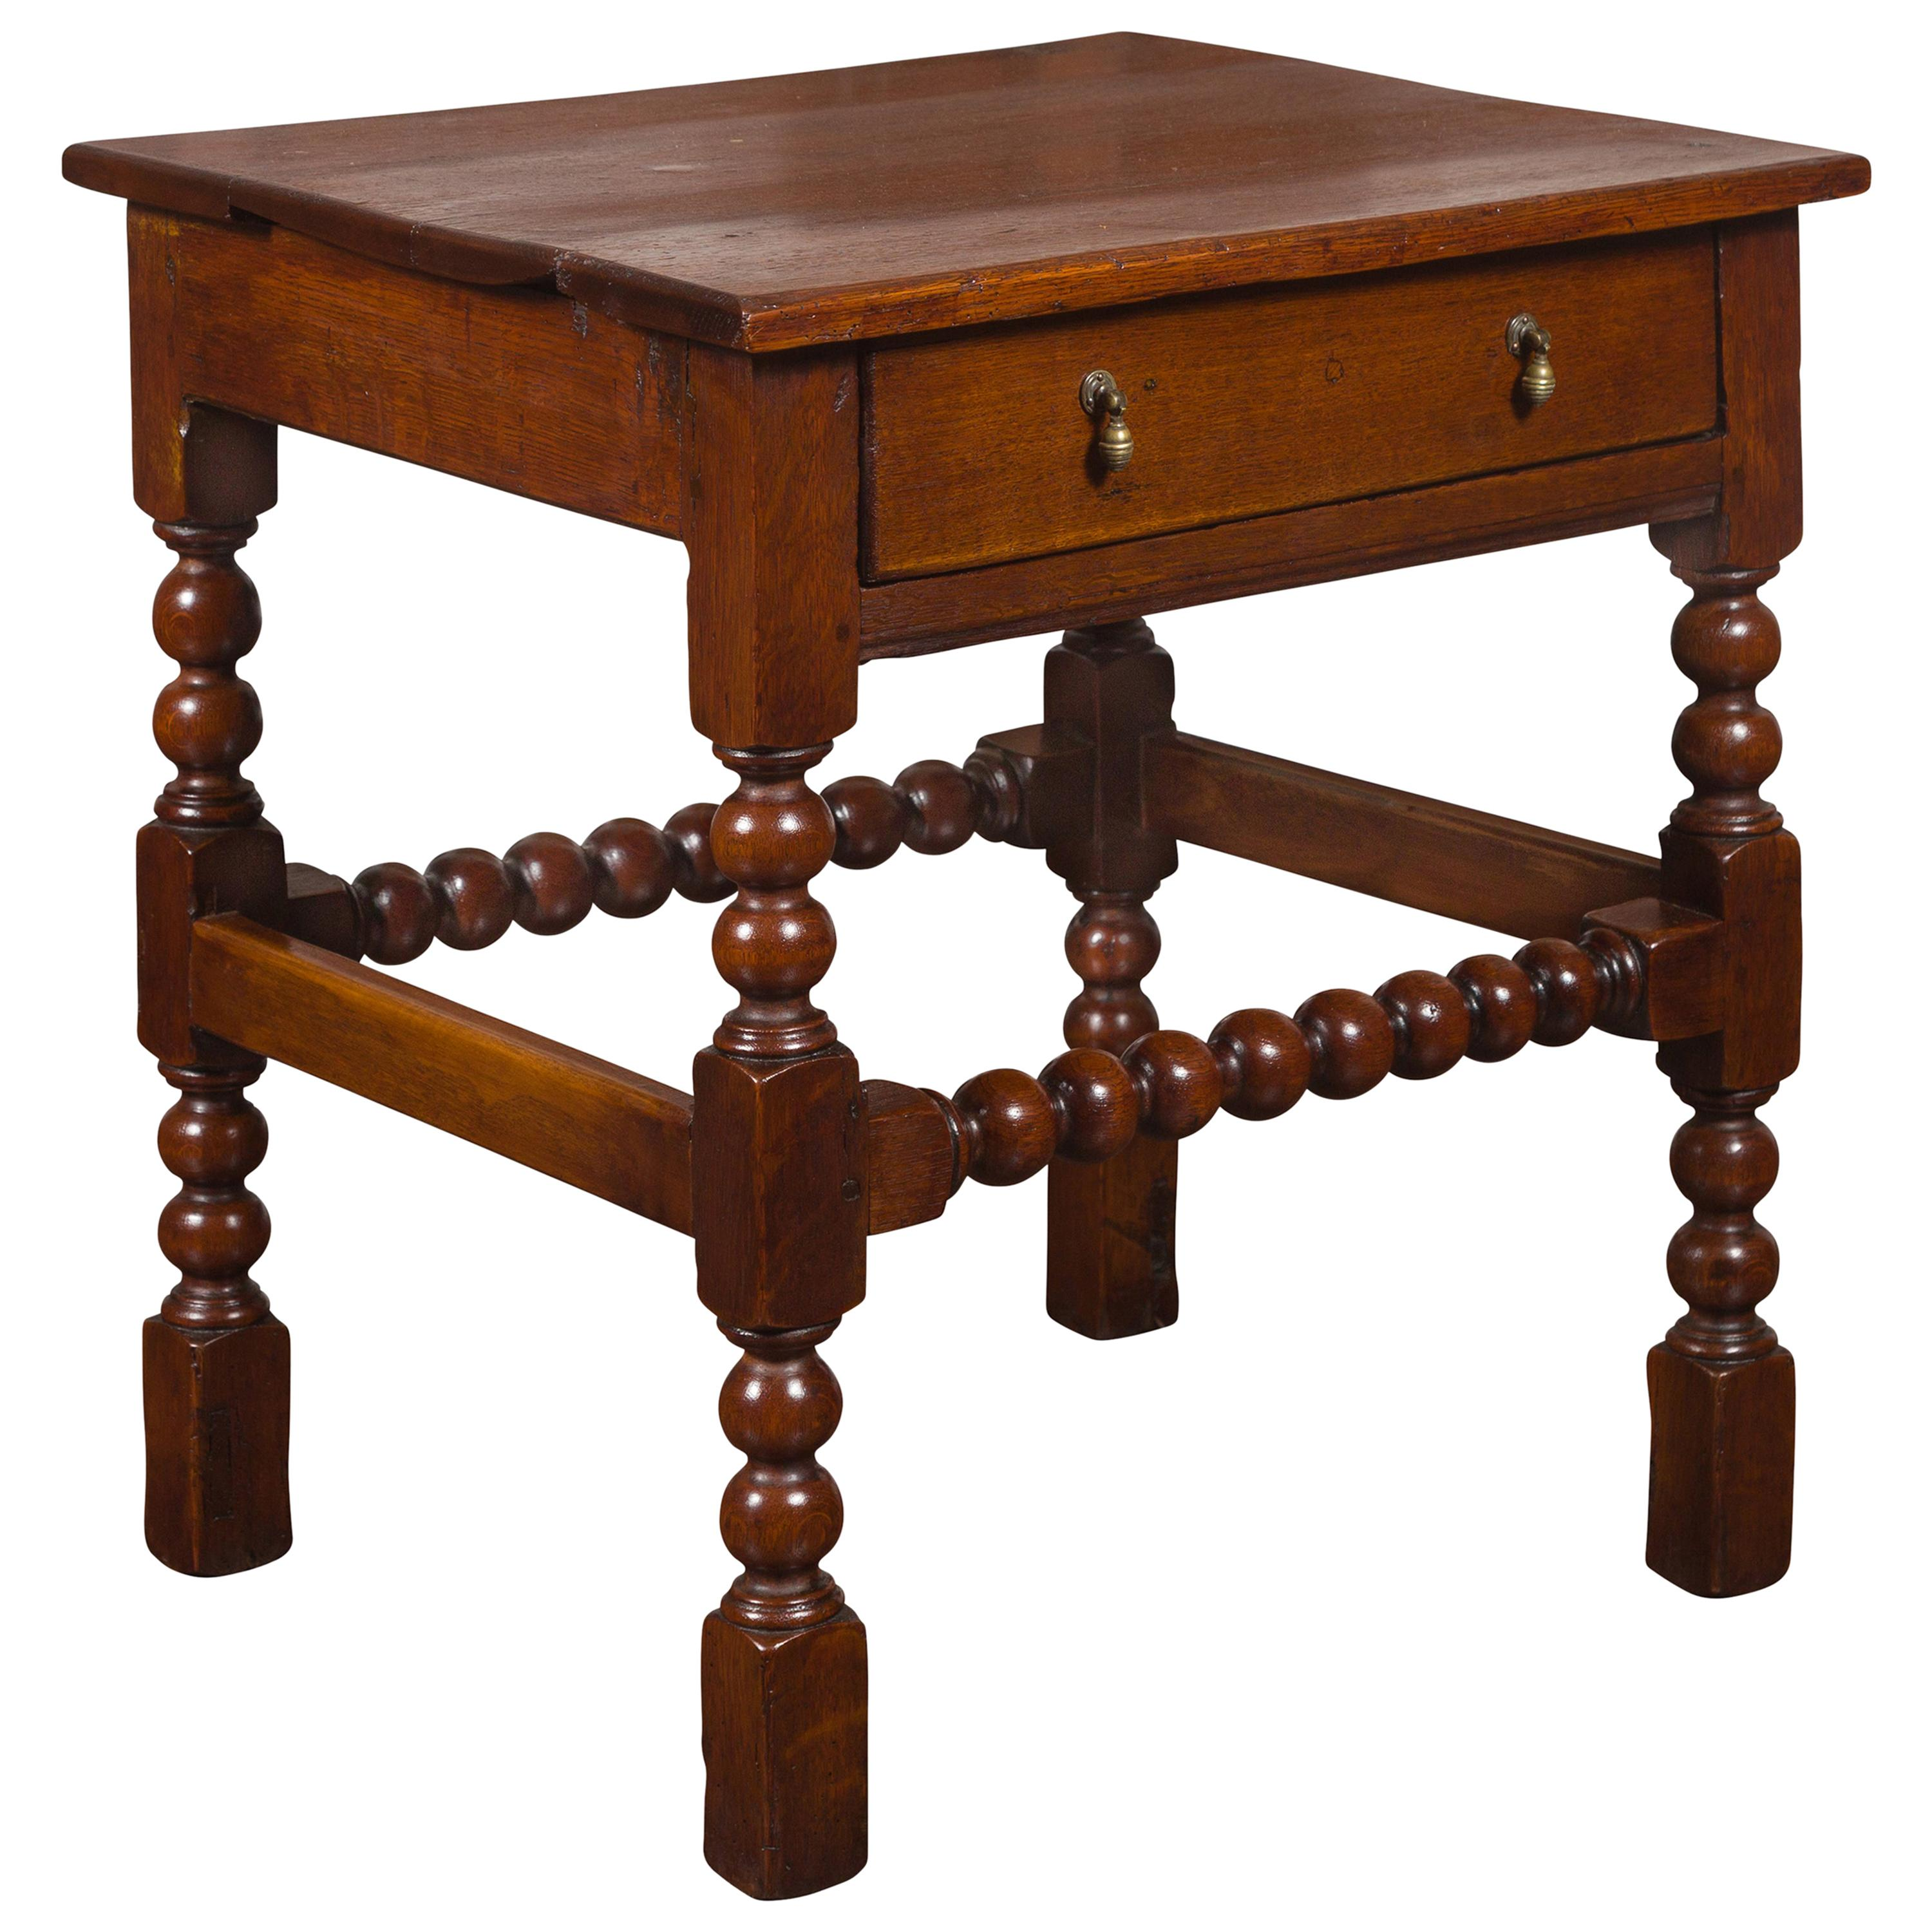 English 1870s Oak Bobbin Leg Side Table with Single Drawer and Stretchers